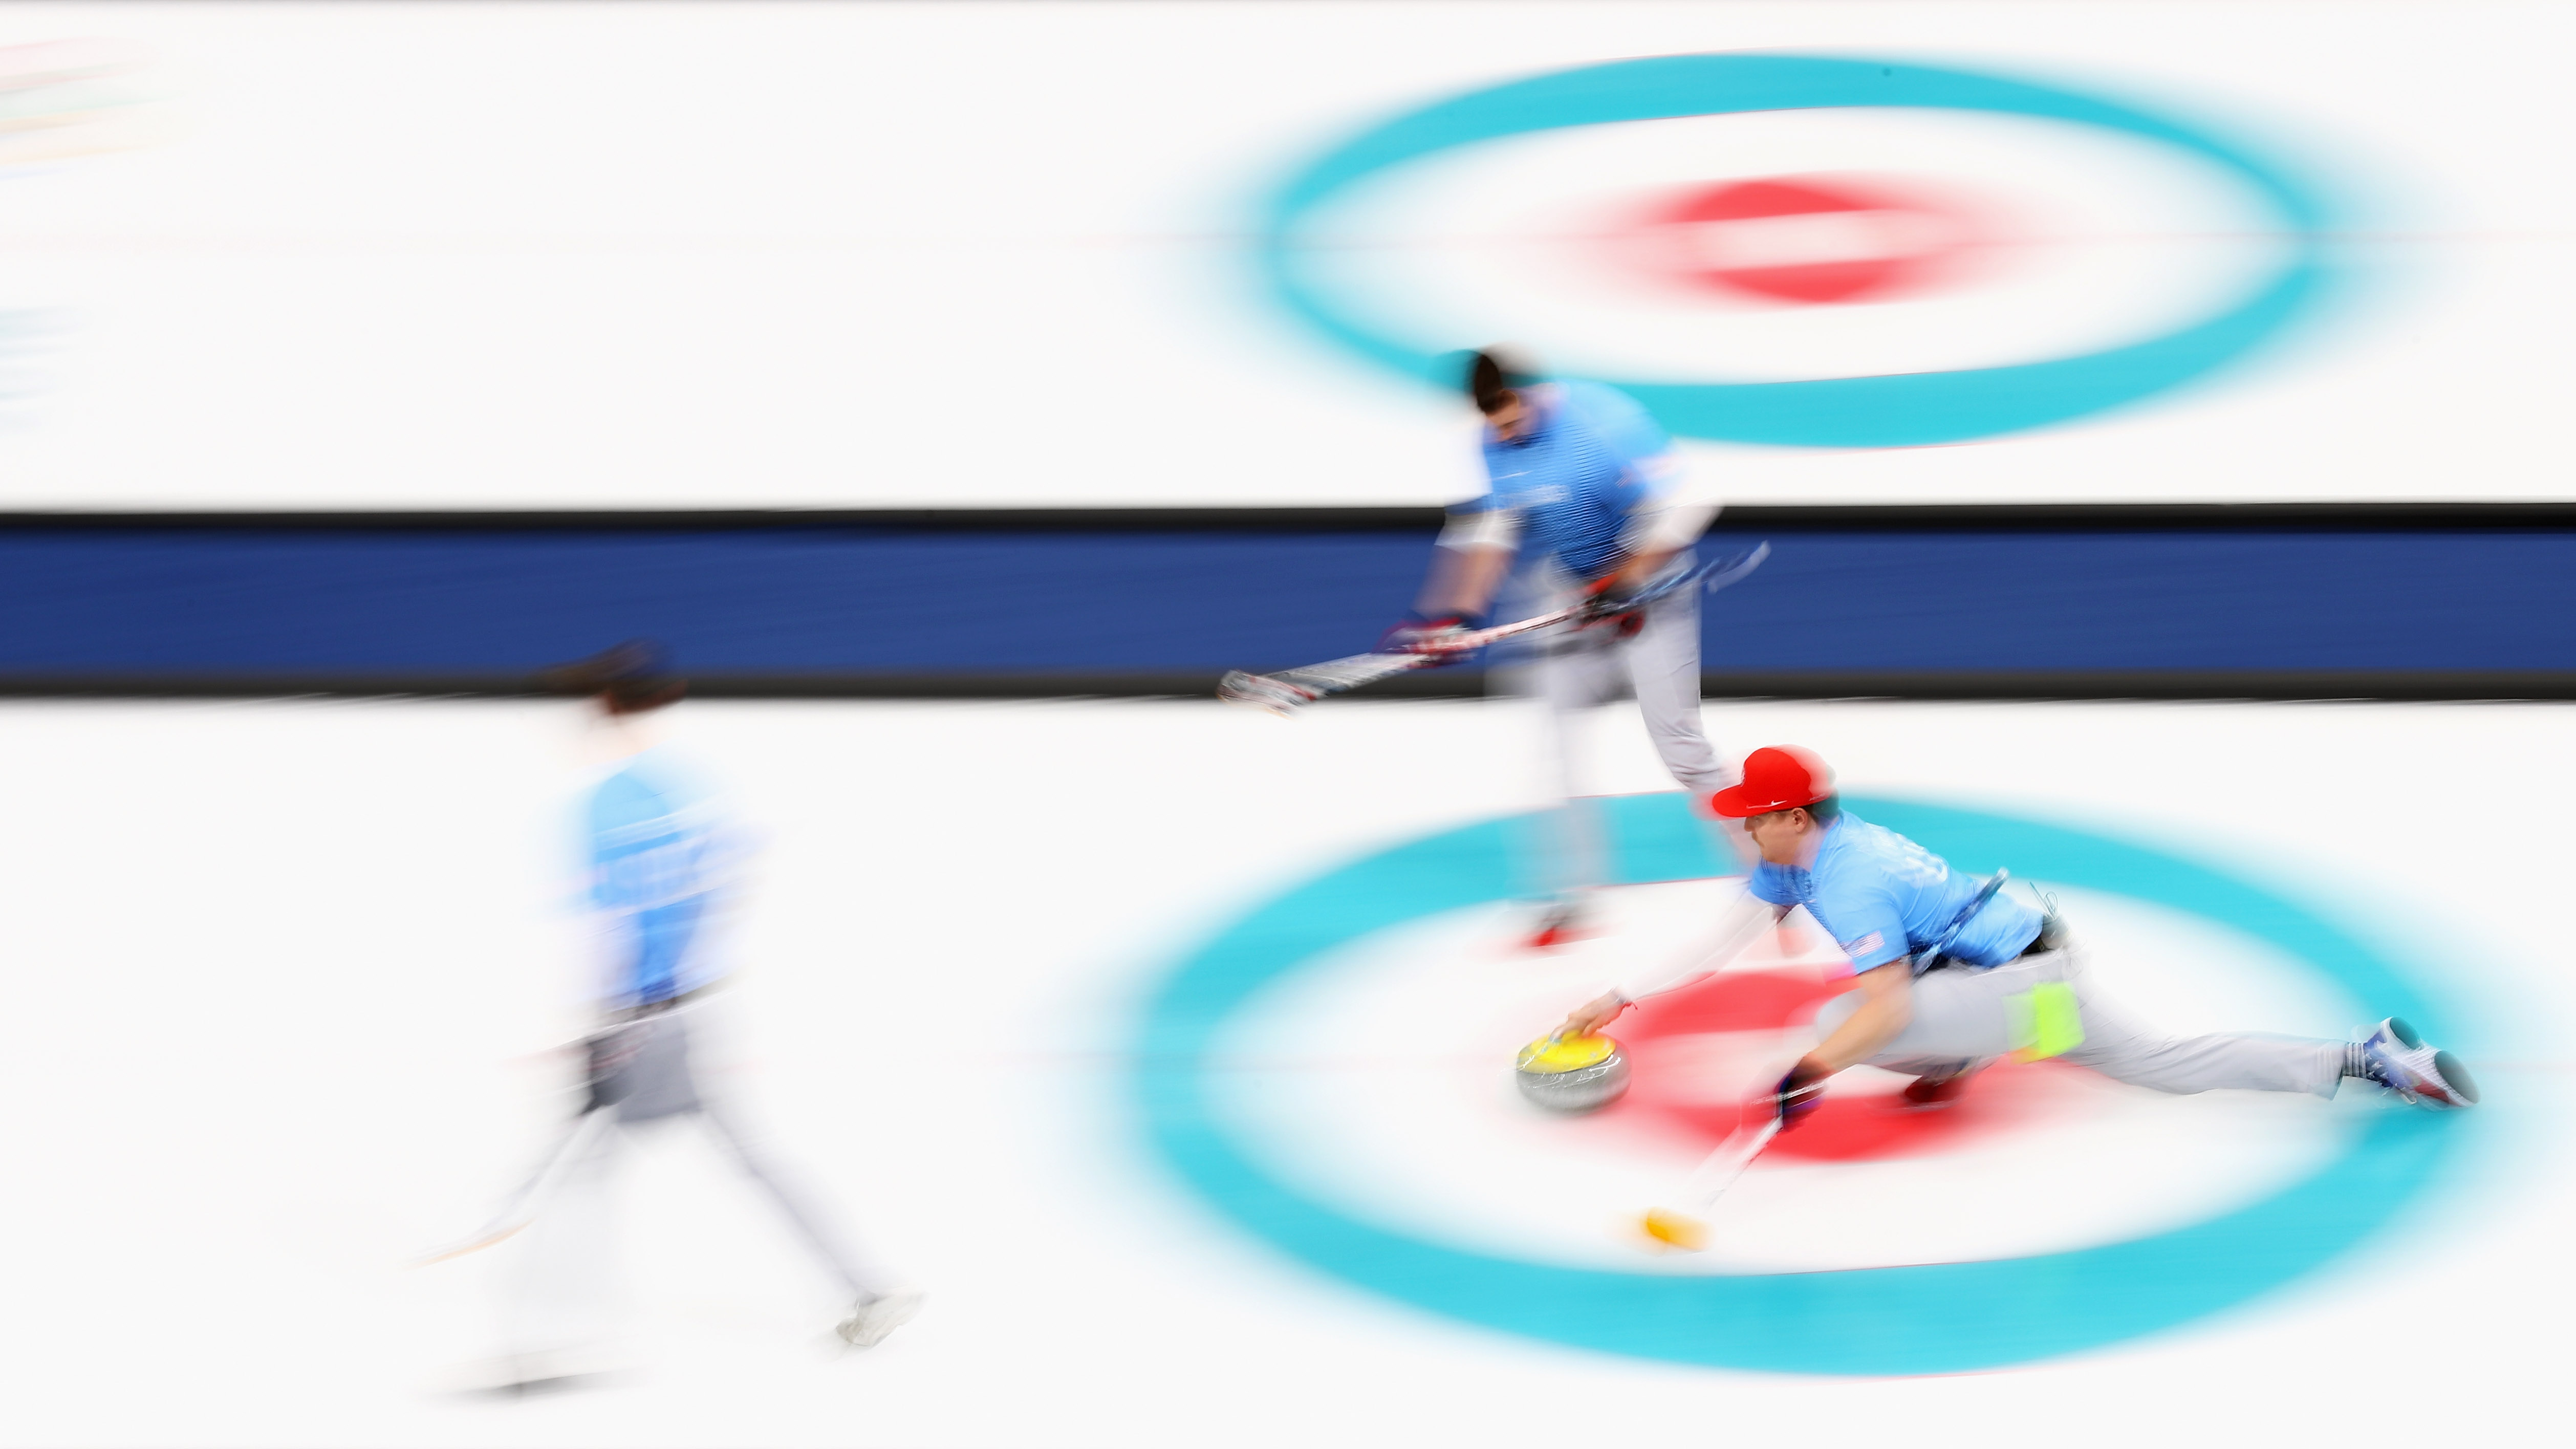 Team USA will go on to play Sweden for the curling gold medal after beating Canada.